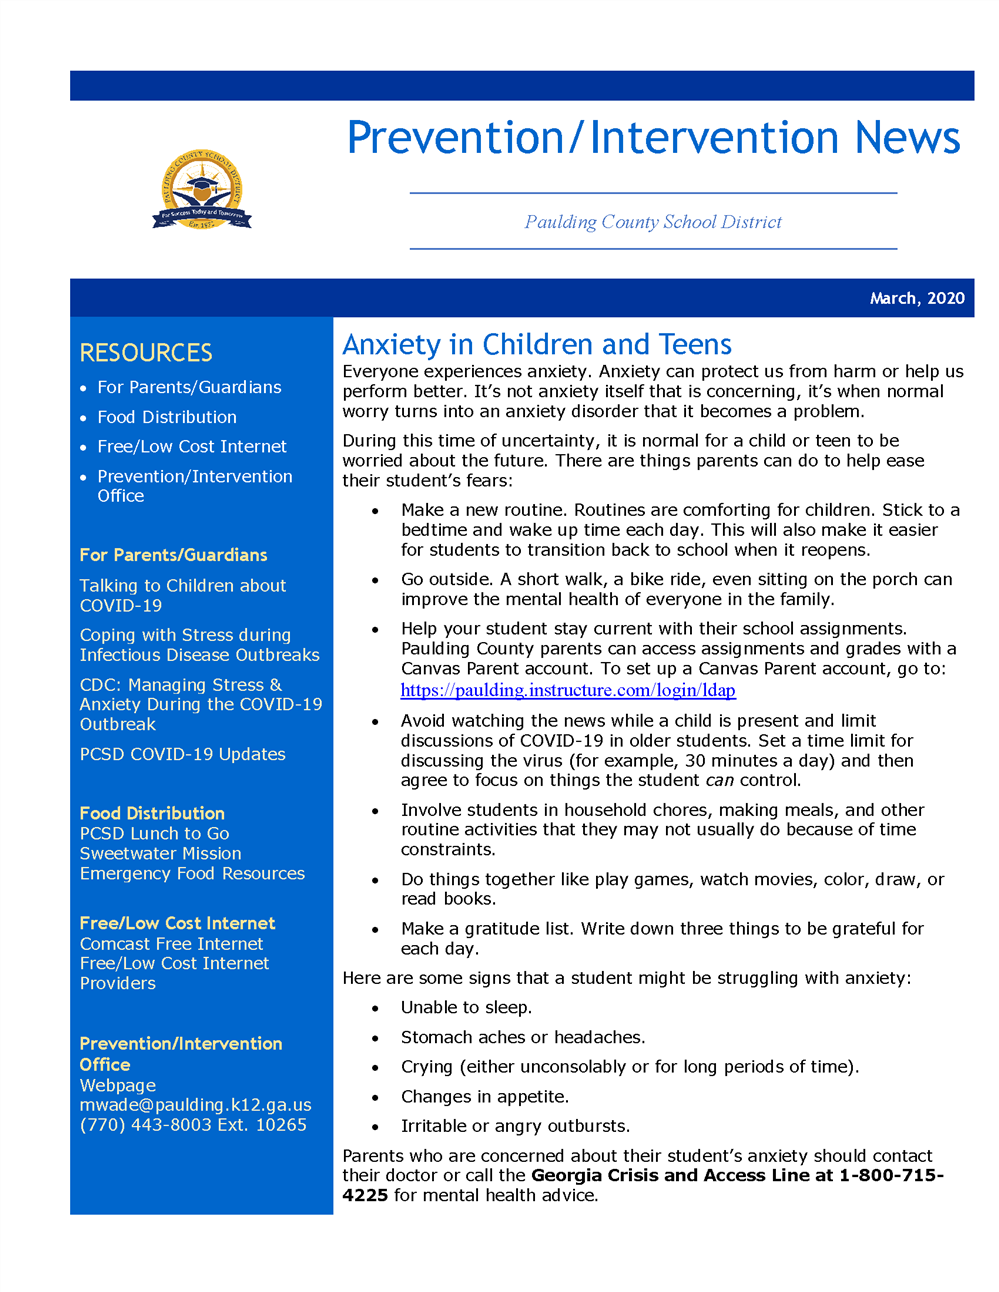 March 2020 Prevention Intervention Newsletter